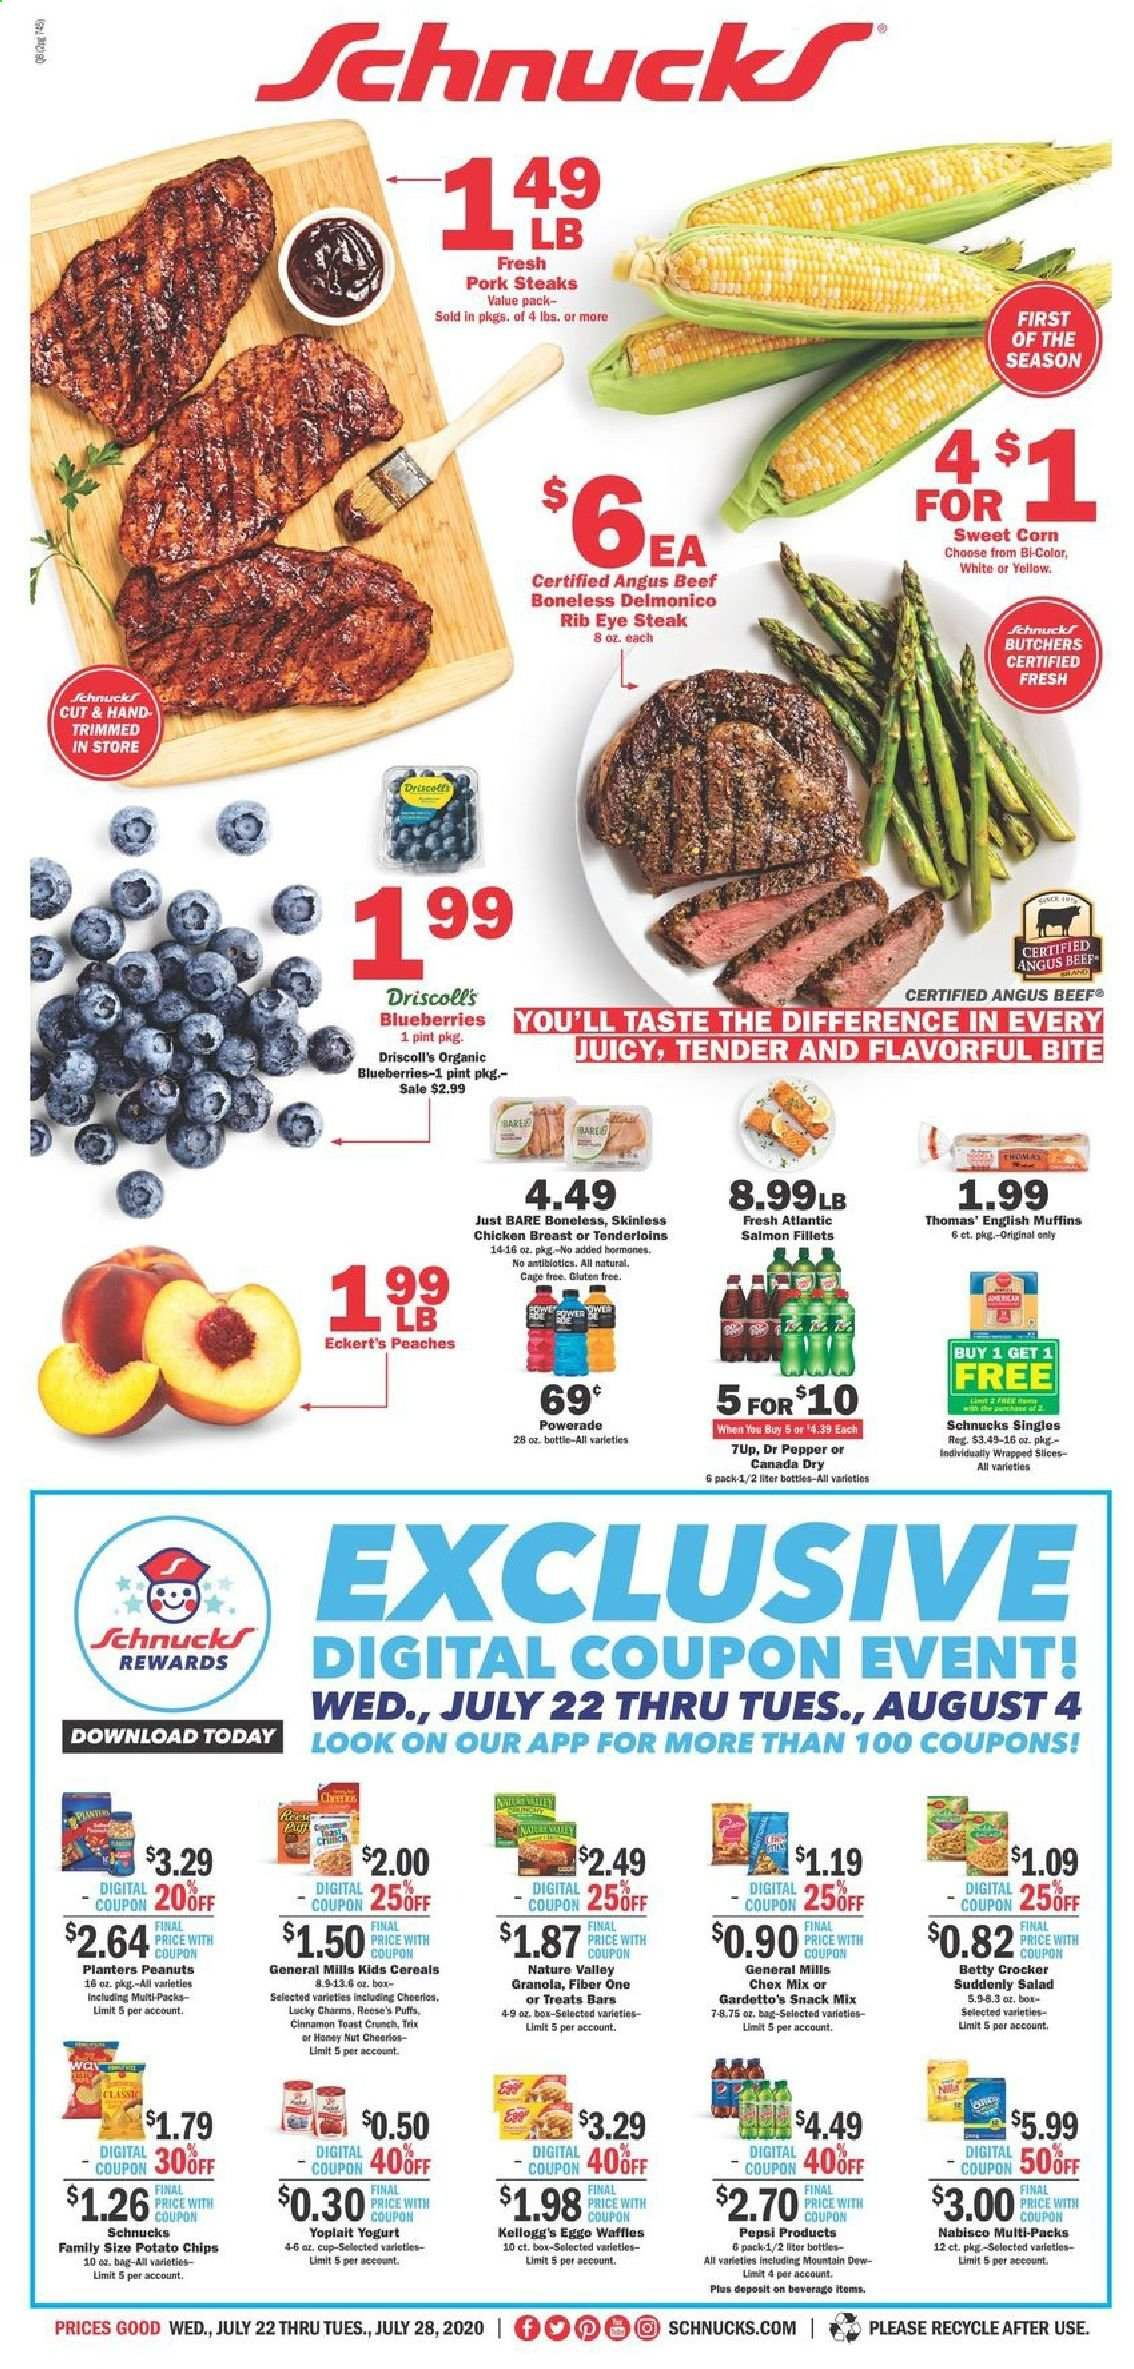 Schnucks Flyer - 07.22.2020 - 07.28.2020 - Sales products - bag, beef meat, blueberries, box, Canada Dry, cereals, corn, english muffins, granola, Mountain Dew, muffins, salmon, pork meat, potato chips, powerade, puffs, cheerios, chicken, chicken breast, peanuts, Pepsi, chips, steak, pepper, snack, reese, salad, Dr. Pepper, peache. Page 1.